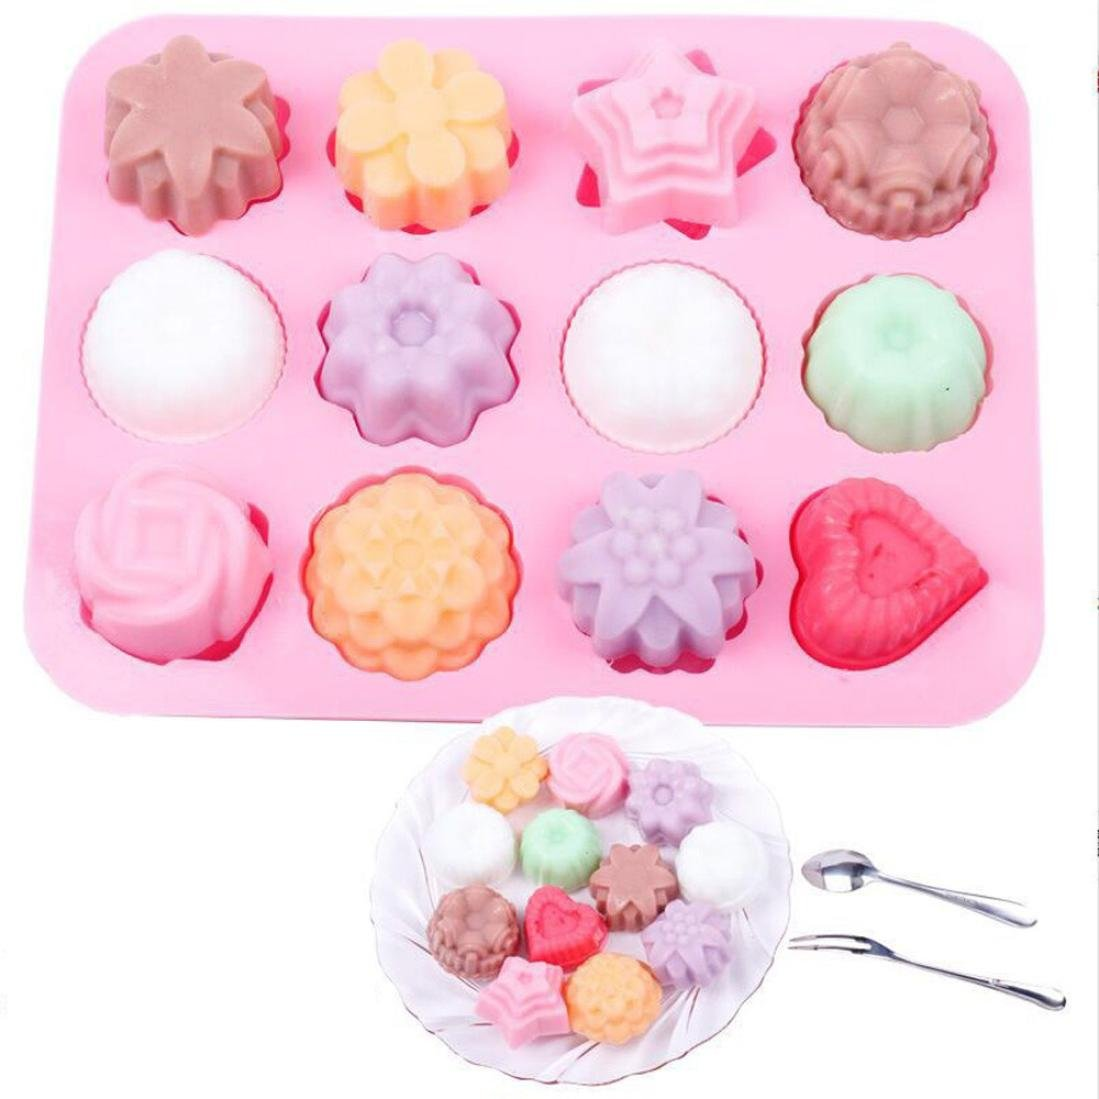 Compia Pink 21.5*16*2.5cm Innovative Design Silicone 3D Chocolate Soap Mold Cake Candy Baking Mould Baking Pan Tray Molds Howyi Store